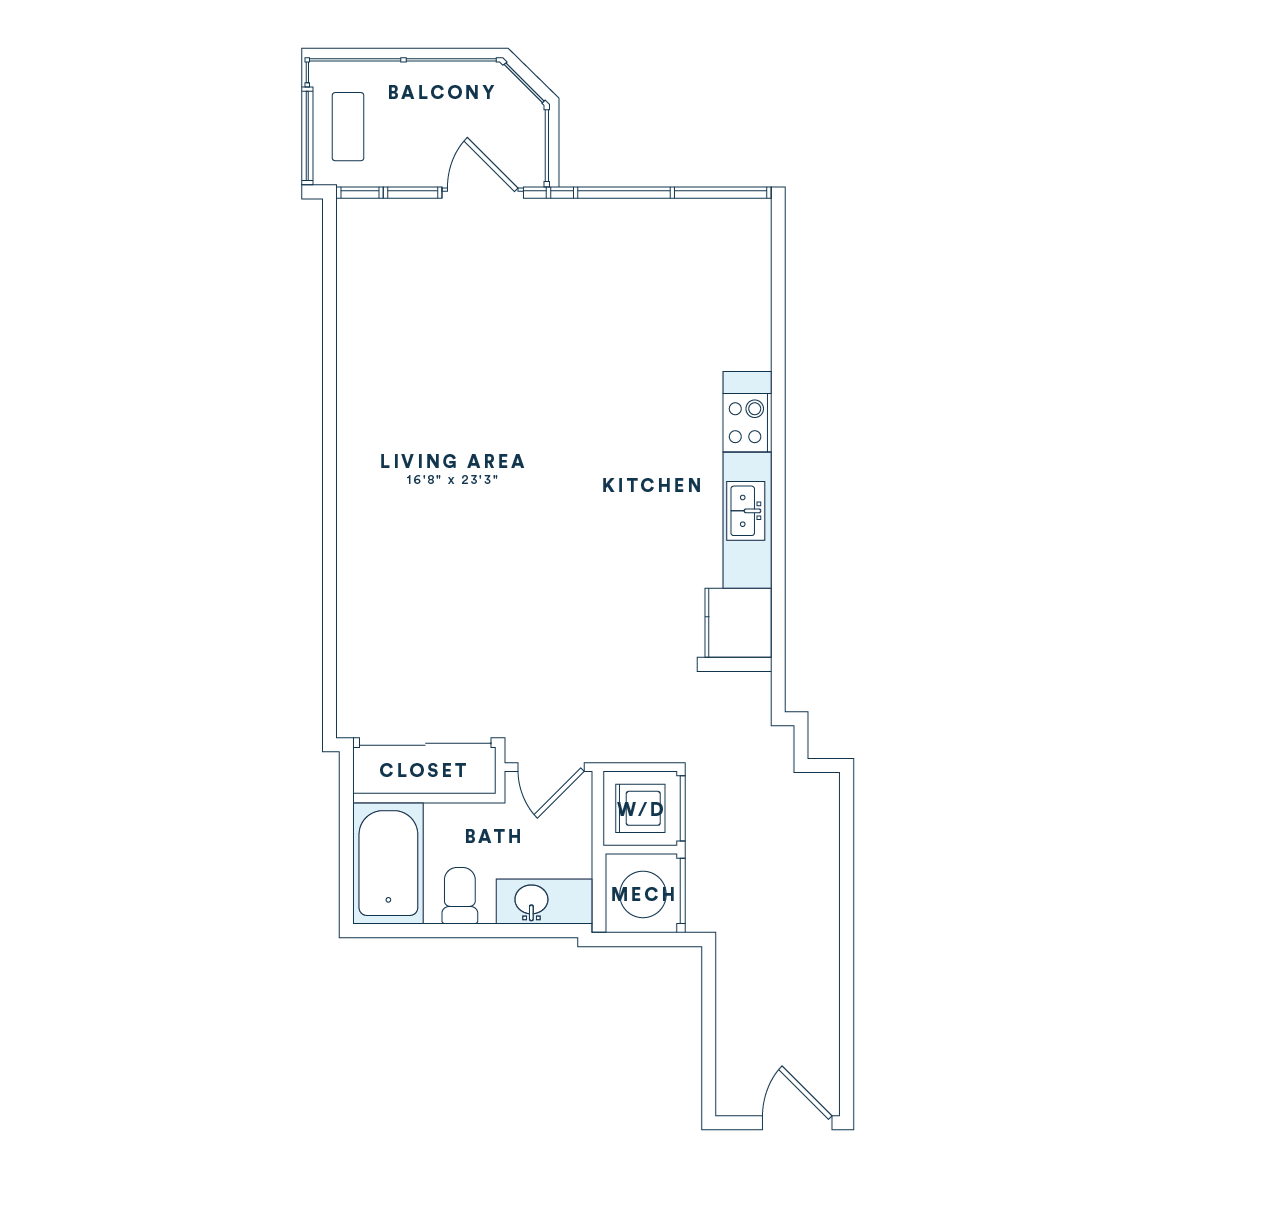 Floor Plans   Apartments in Dallas   Victory Place Apartments on hand drawn floor plans, feng shui floor plans, architect floor plans, hollywood hills homes floor plans, walk in closet floor plans, dallas floor plans, interior floor plans, mansion floor plans, texas floor plans,